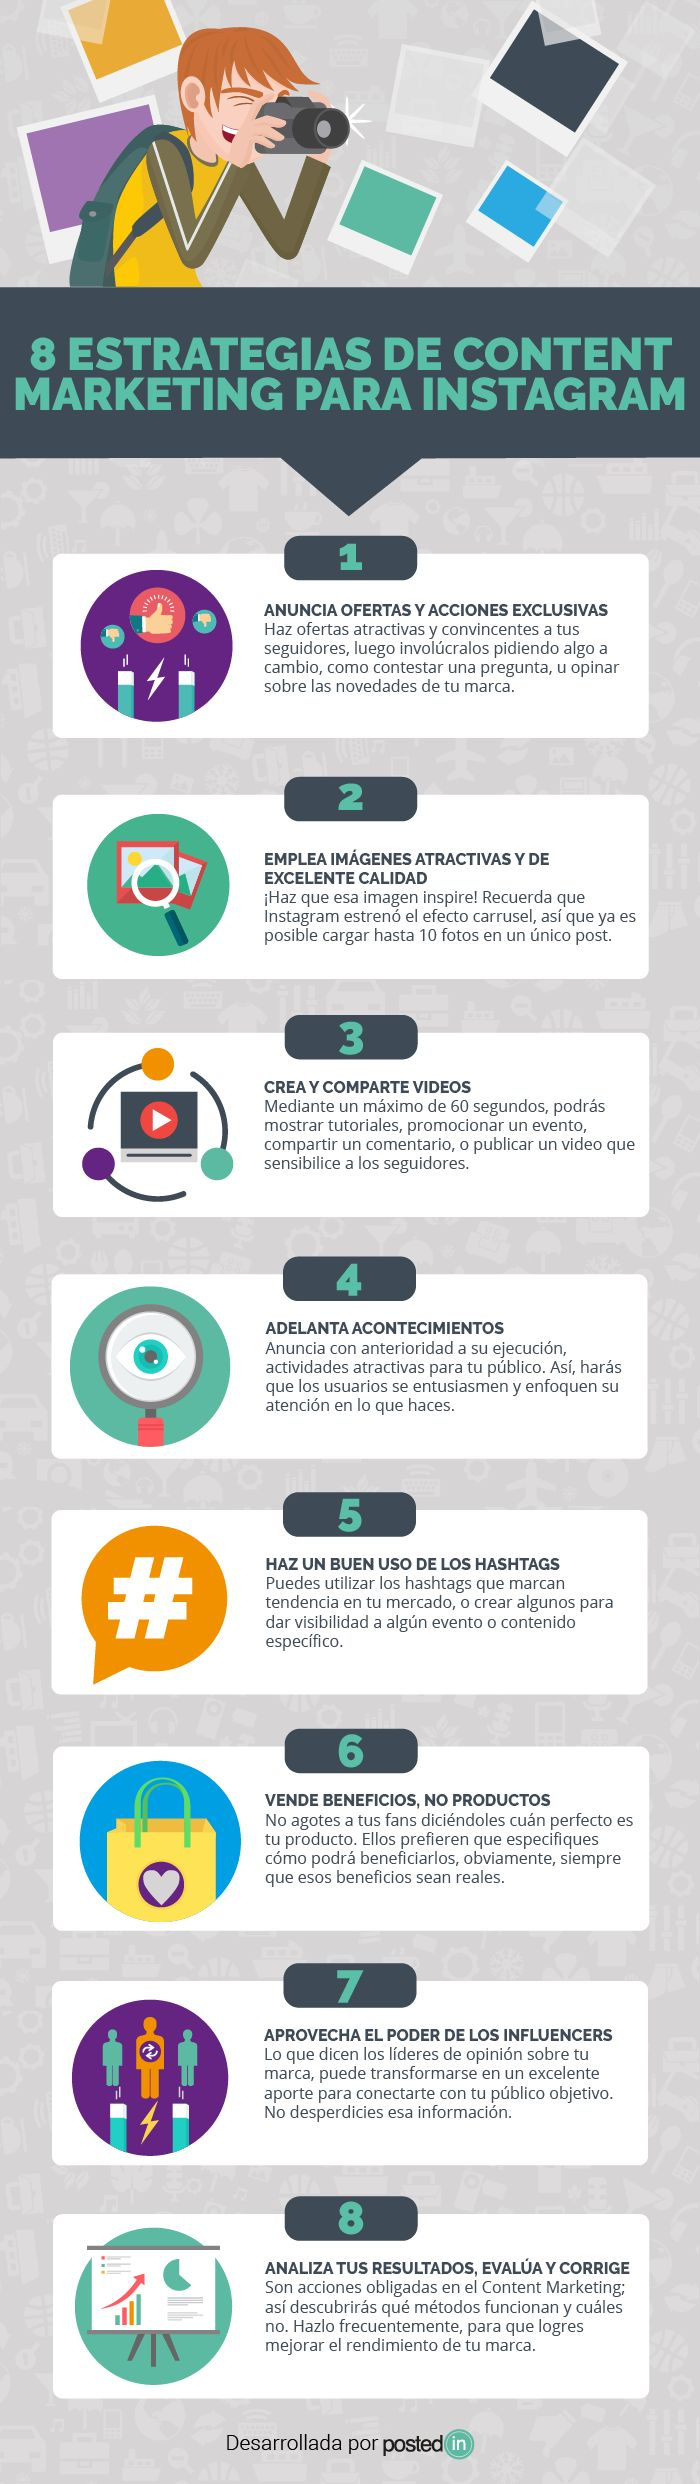 8 estrategias de marketing de contenidos para Instagram #infografia #marketing #socialmedia